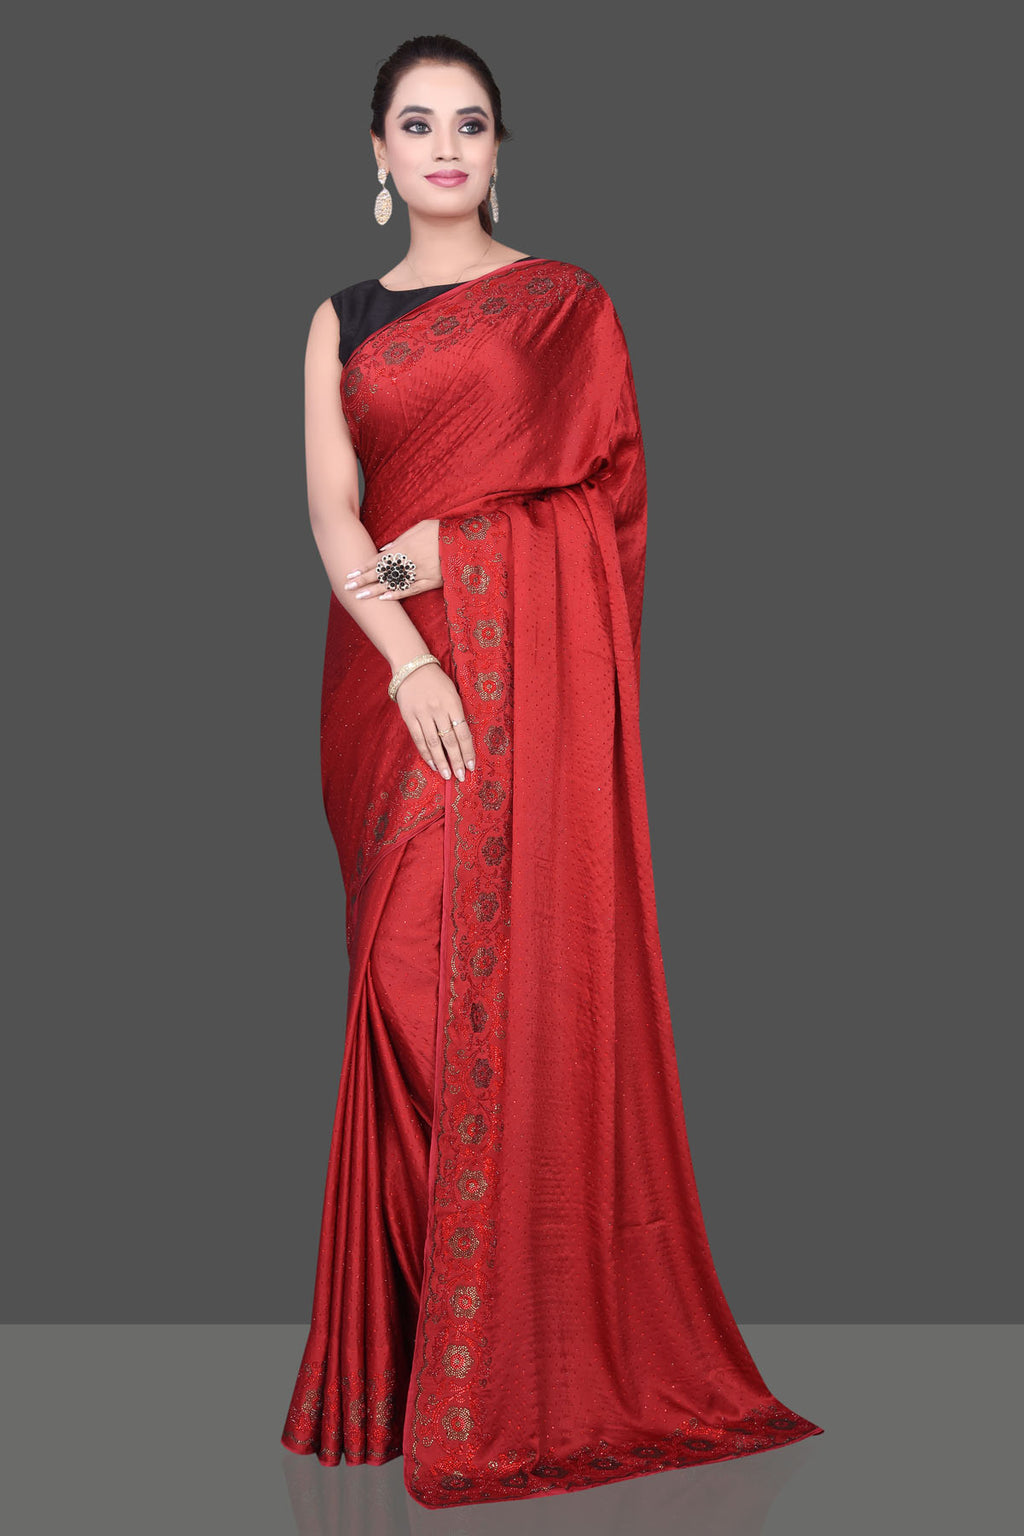 Shop stunning blood red stone work georgette crepe saree online in USA. Be the talk of the parties and special occasions with stunning embroidered sarees, designer sarees, pure silk saris, Bollywood sarees from Pure Elegance Indian fashion store in USA.-full view